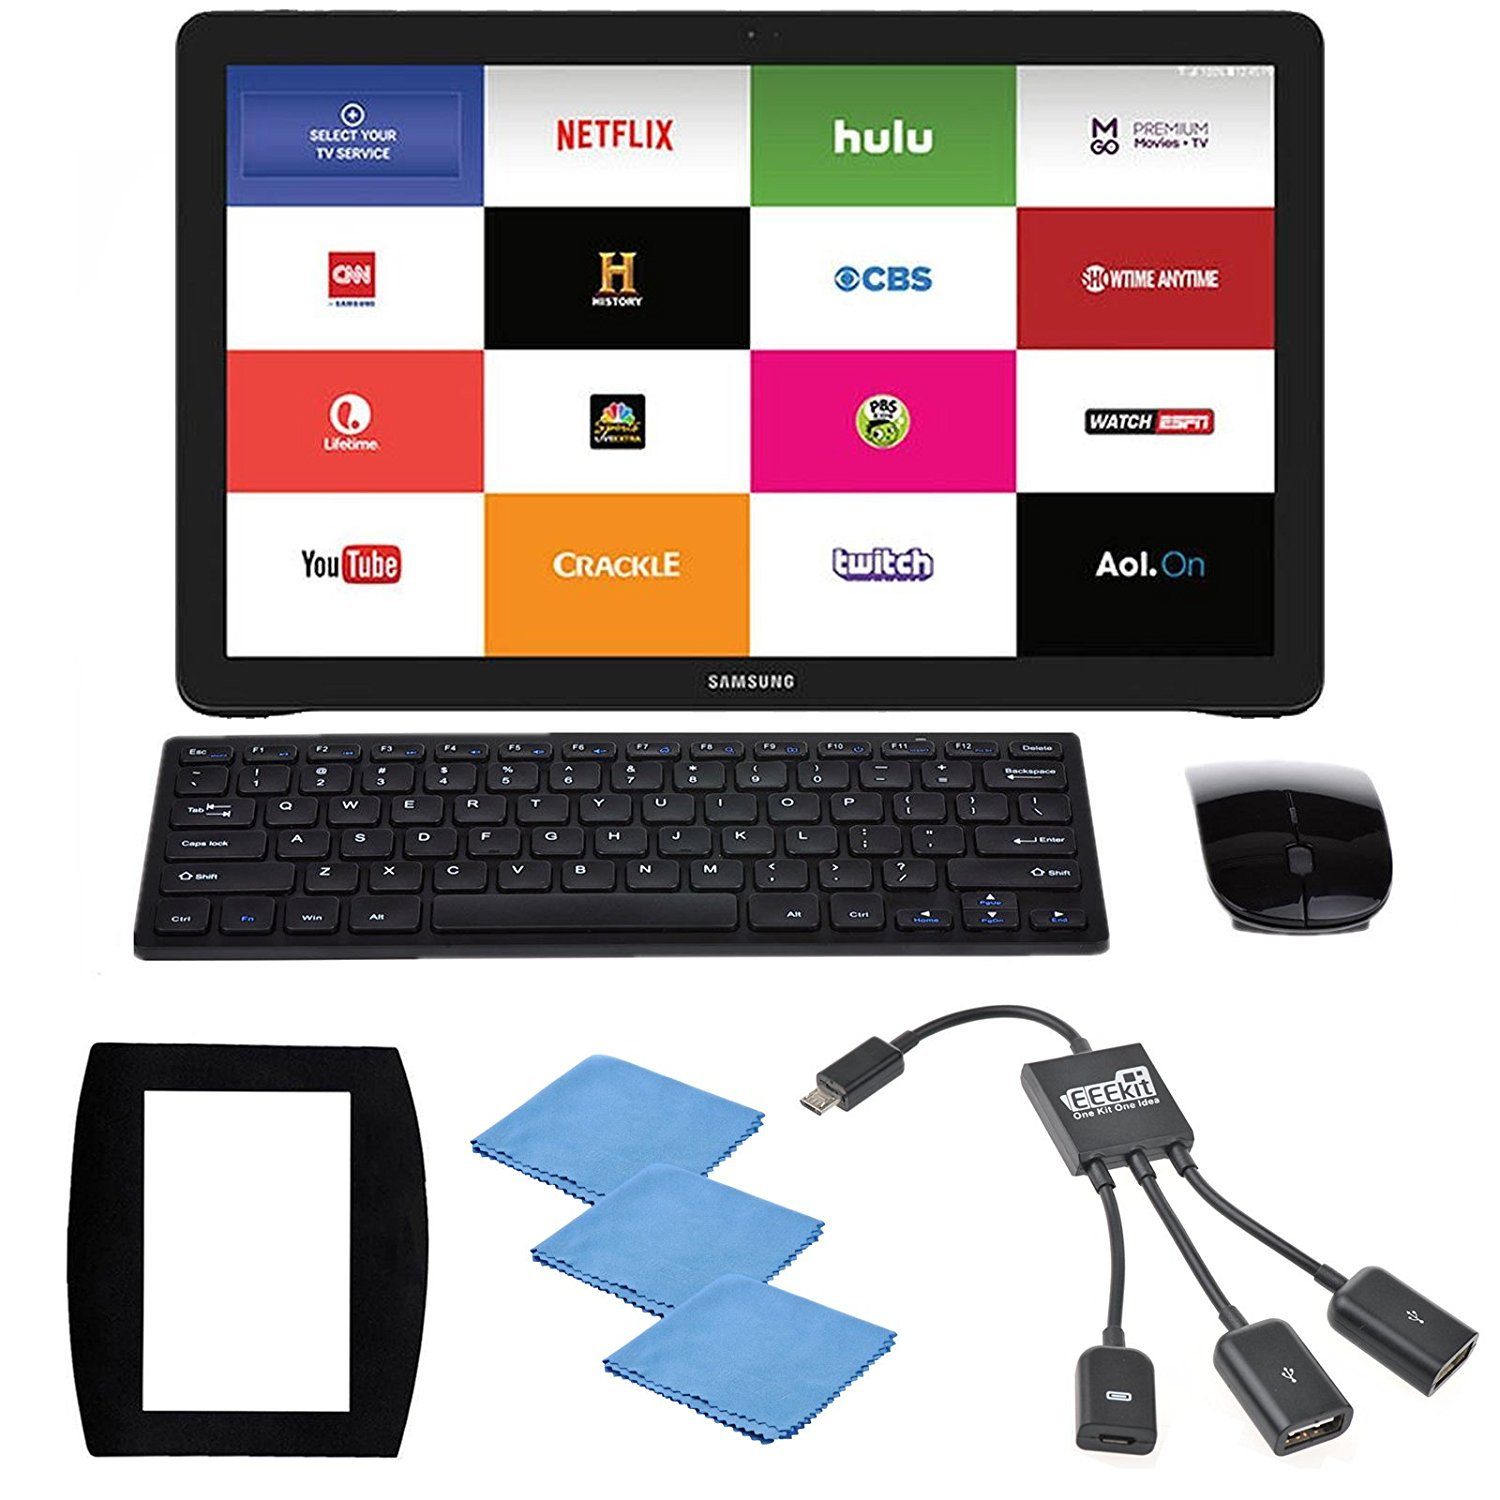 EEEKit 5 in 1 Office Solution Kit for Samsung Galaxy View 2 18 4 inch  Tablet, 2 4G Wireless Keyboard Mouse Combo, Micro USB Host OTG Hub Adapter,